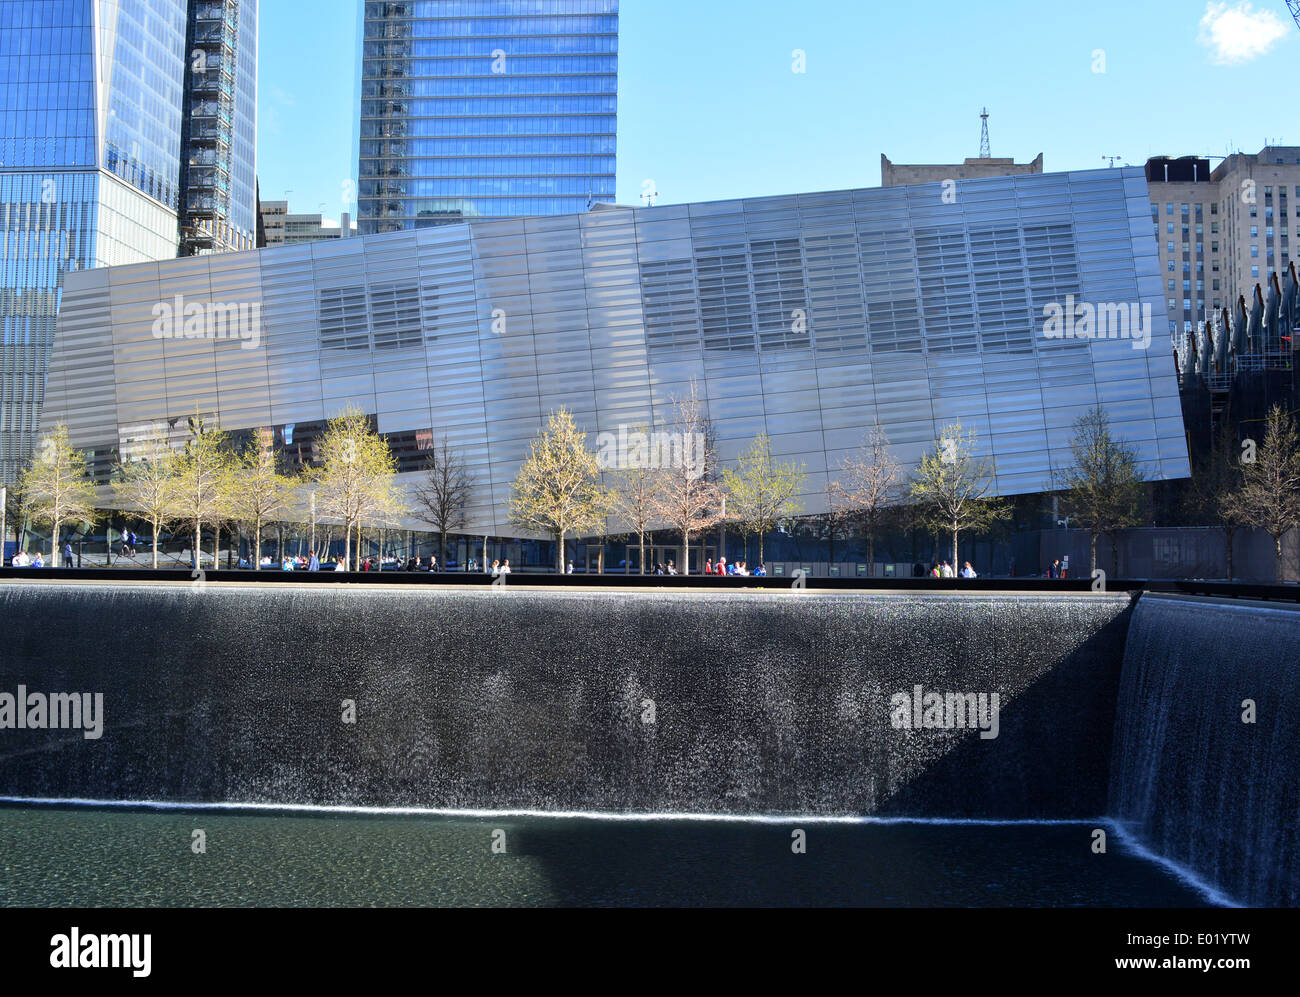 National 9/11 Museum at the 9/11 Memorial on Ground Zero in Lower Manhattan. - Stock Image